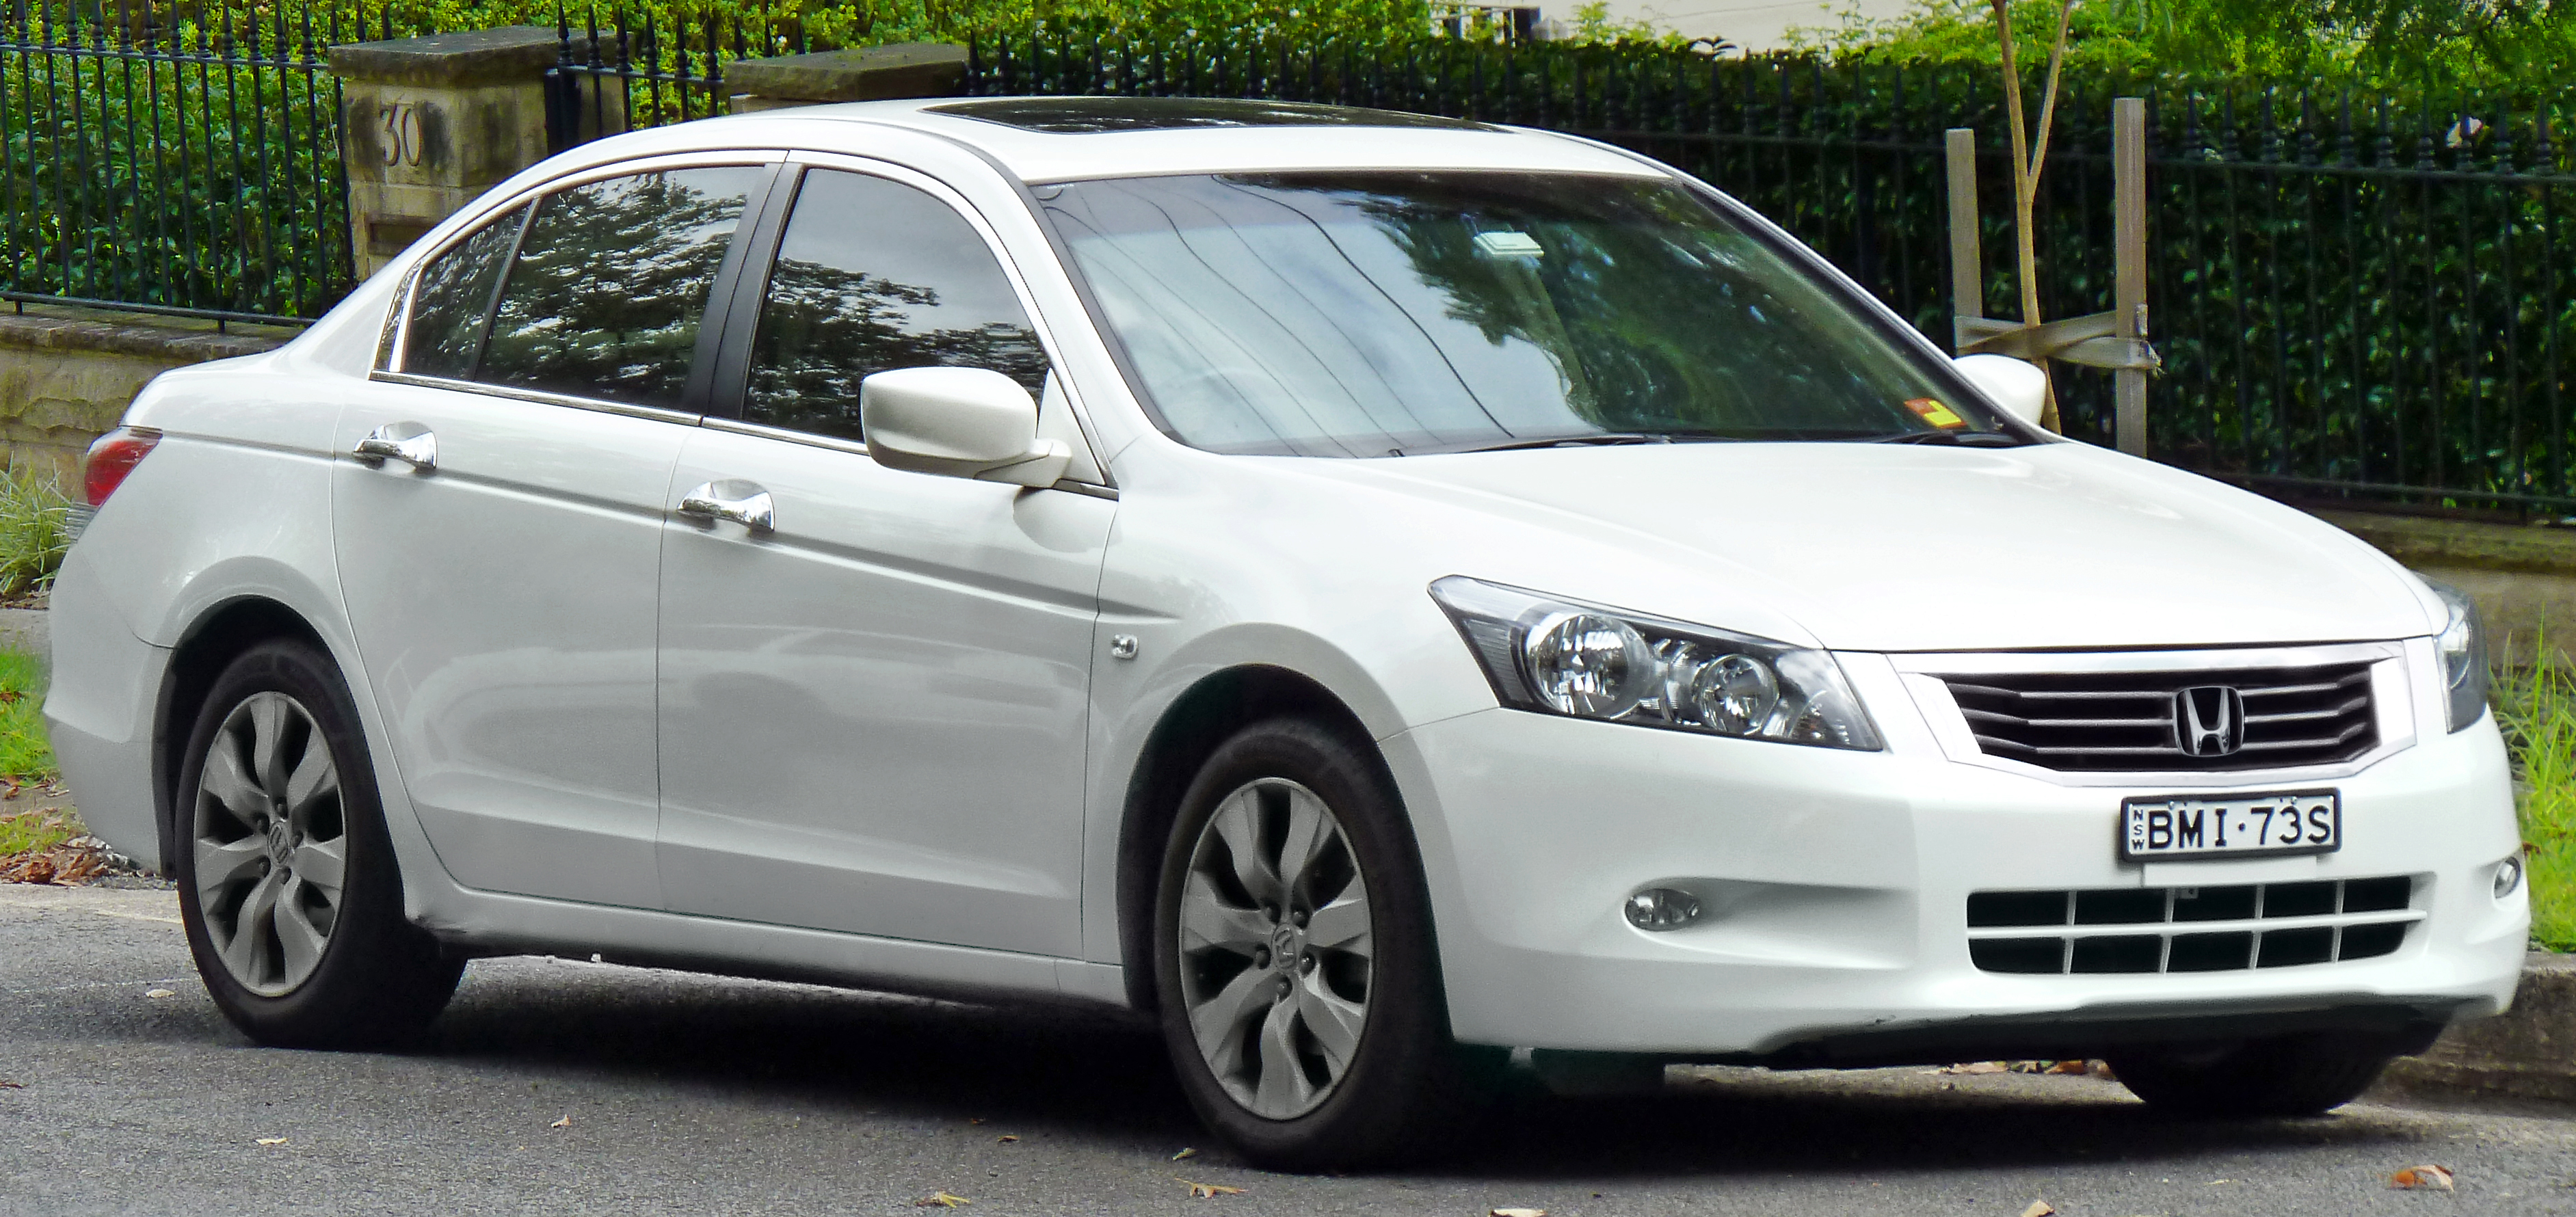 honda accord viii sedan 2014 wallpaper #4